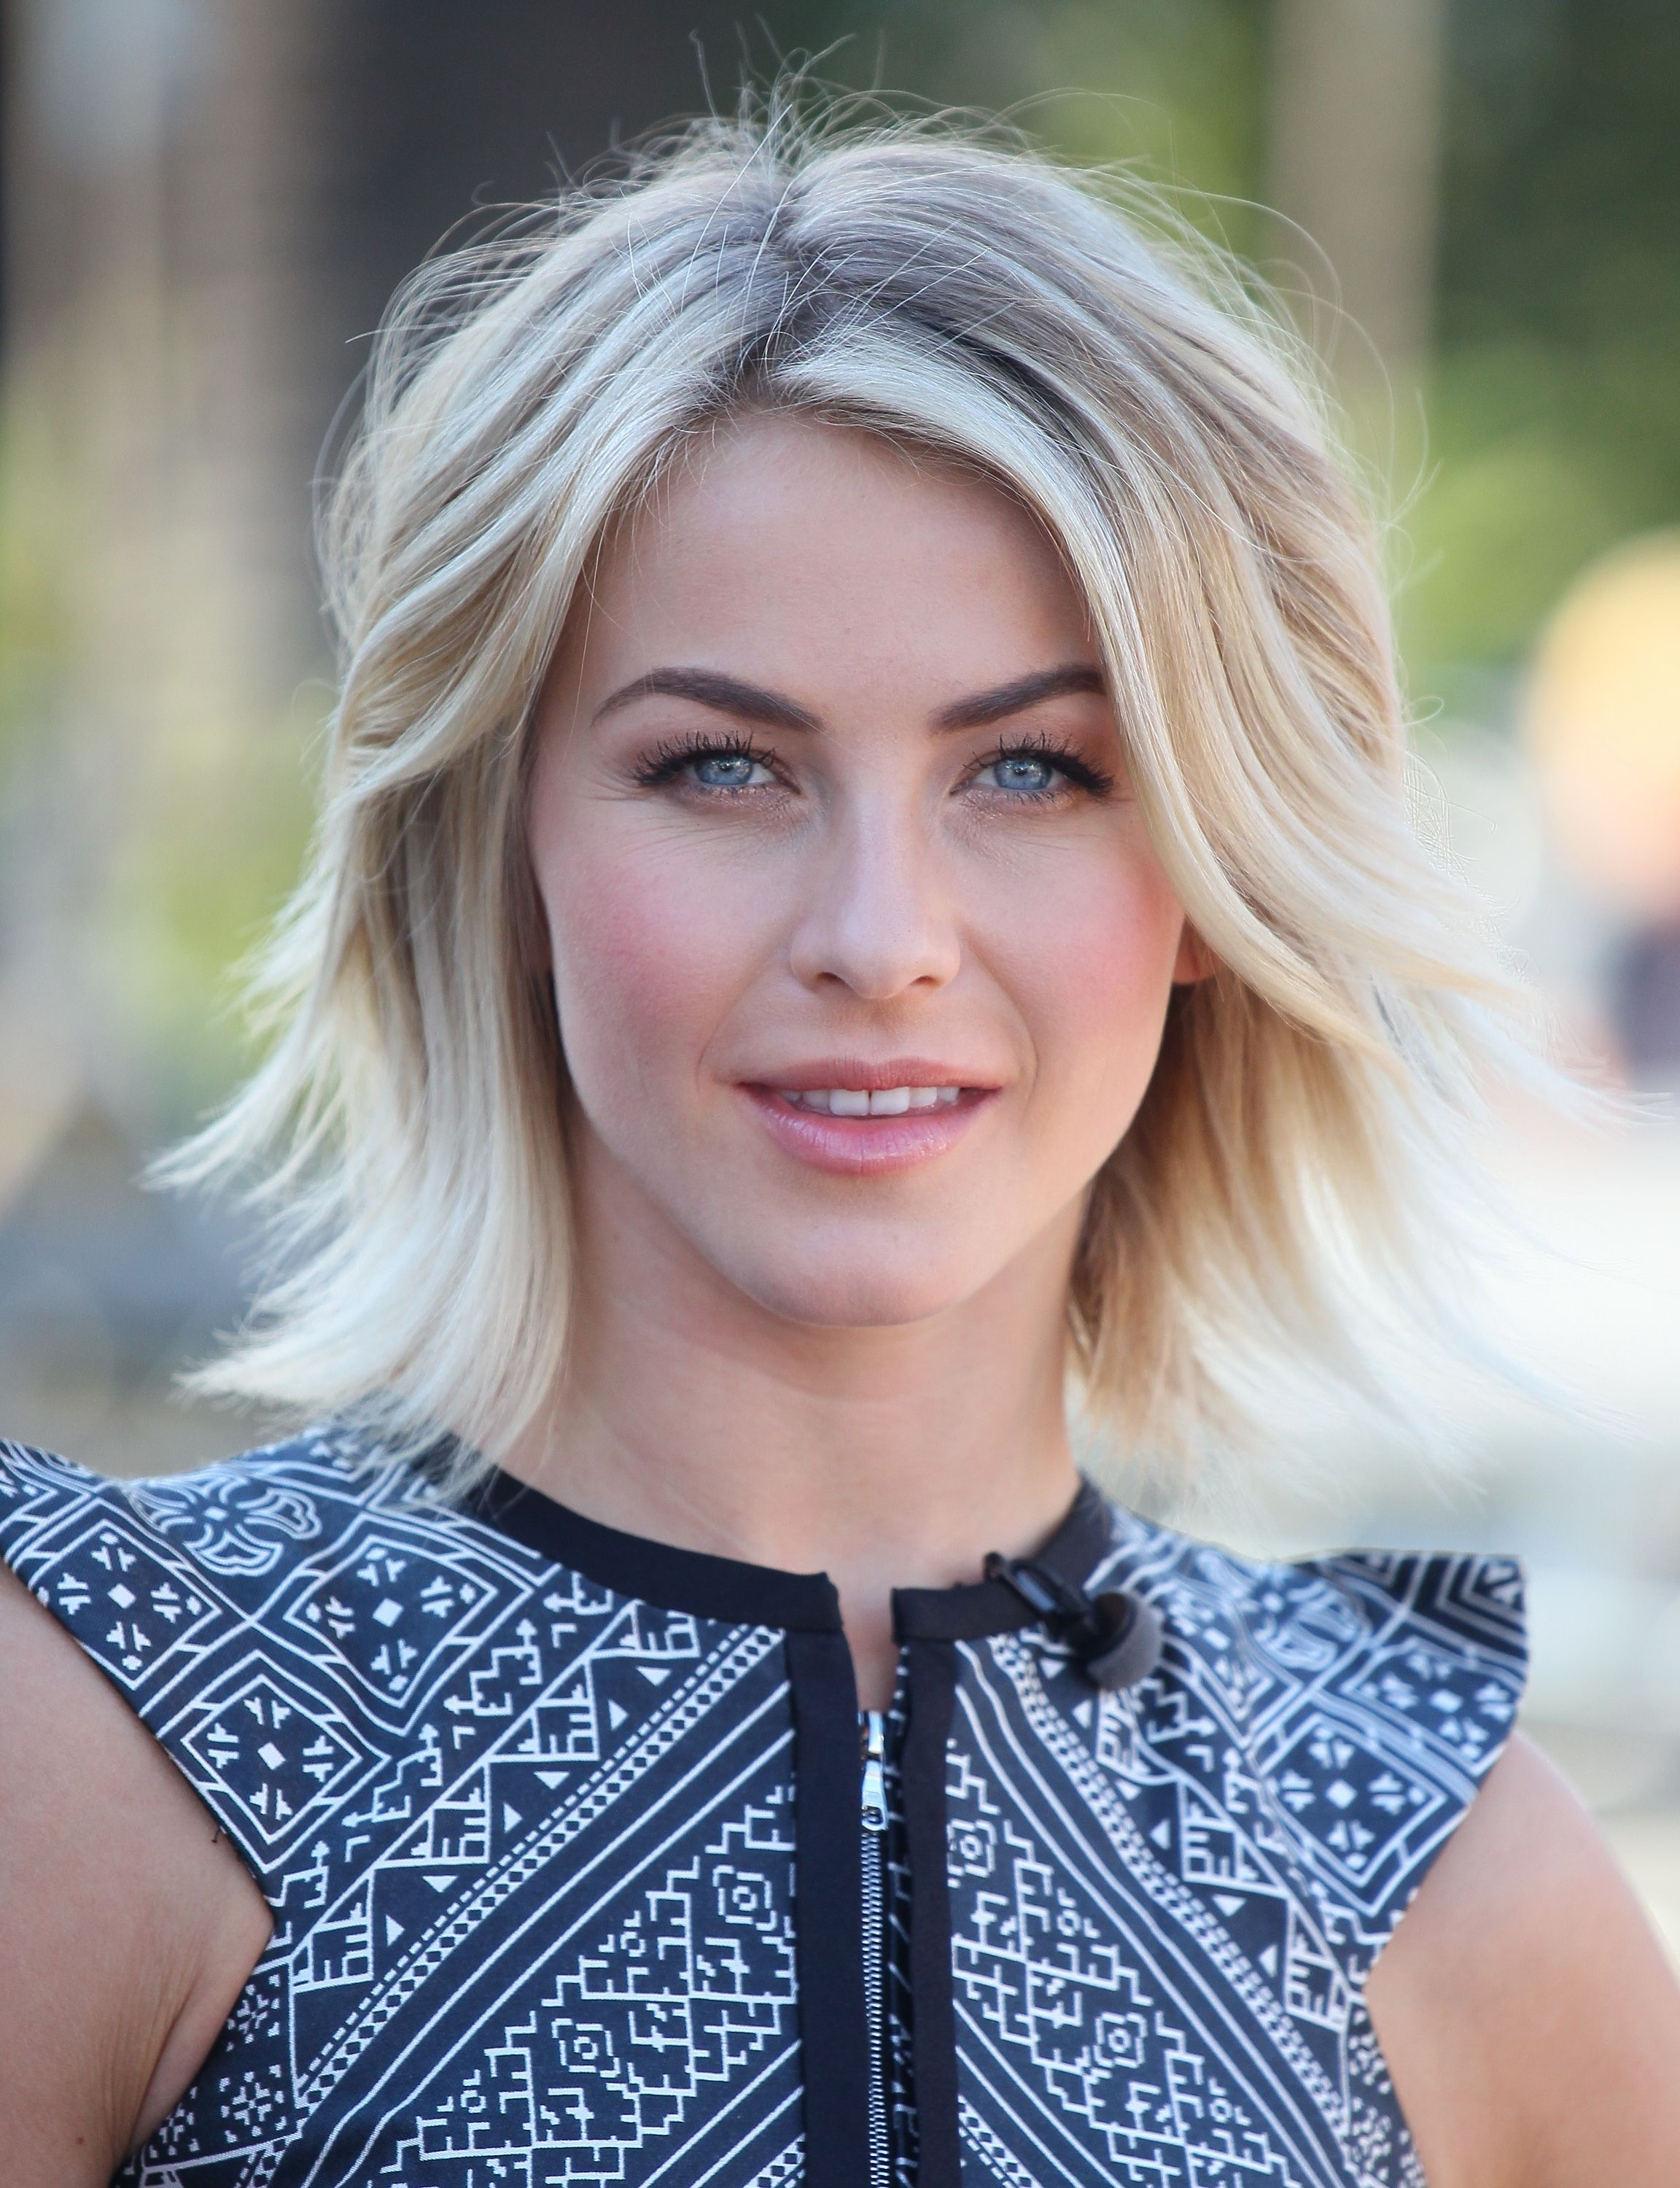 34 Best Hairstyles For Thin Hair - Haircuts For Women With Fine Or for Haircut For Thin Hair Women